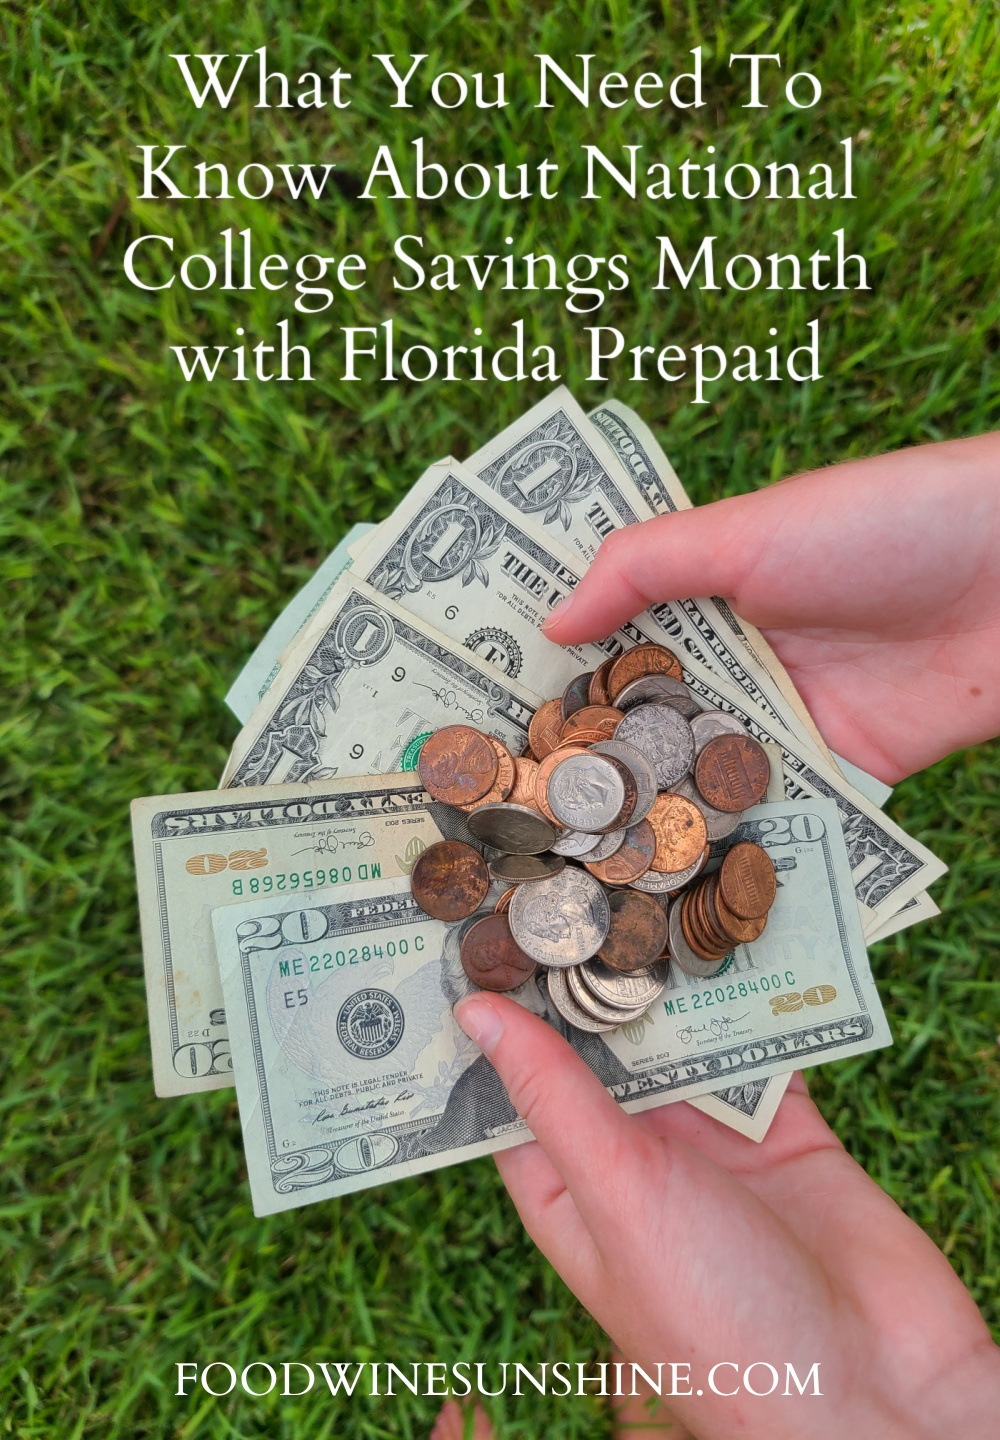 What You Need To Know About National College Savings Month with Florida Prepaid